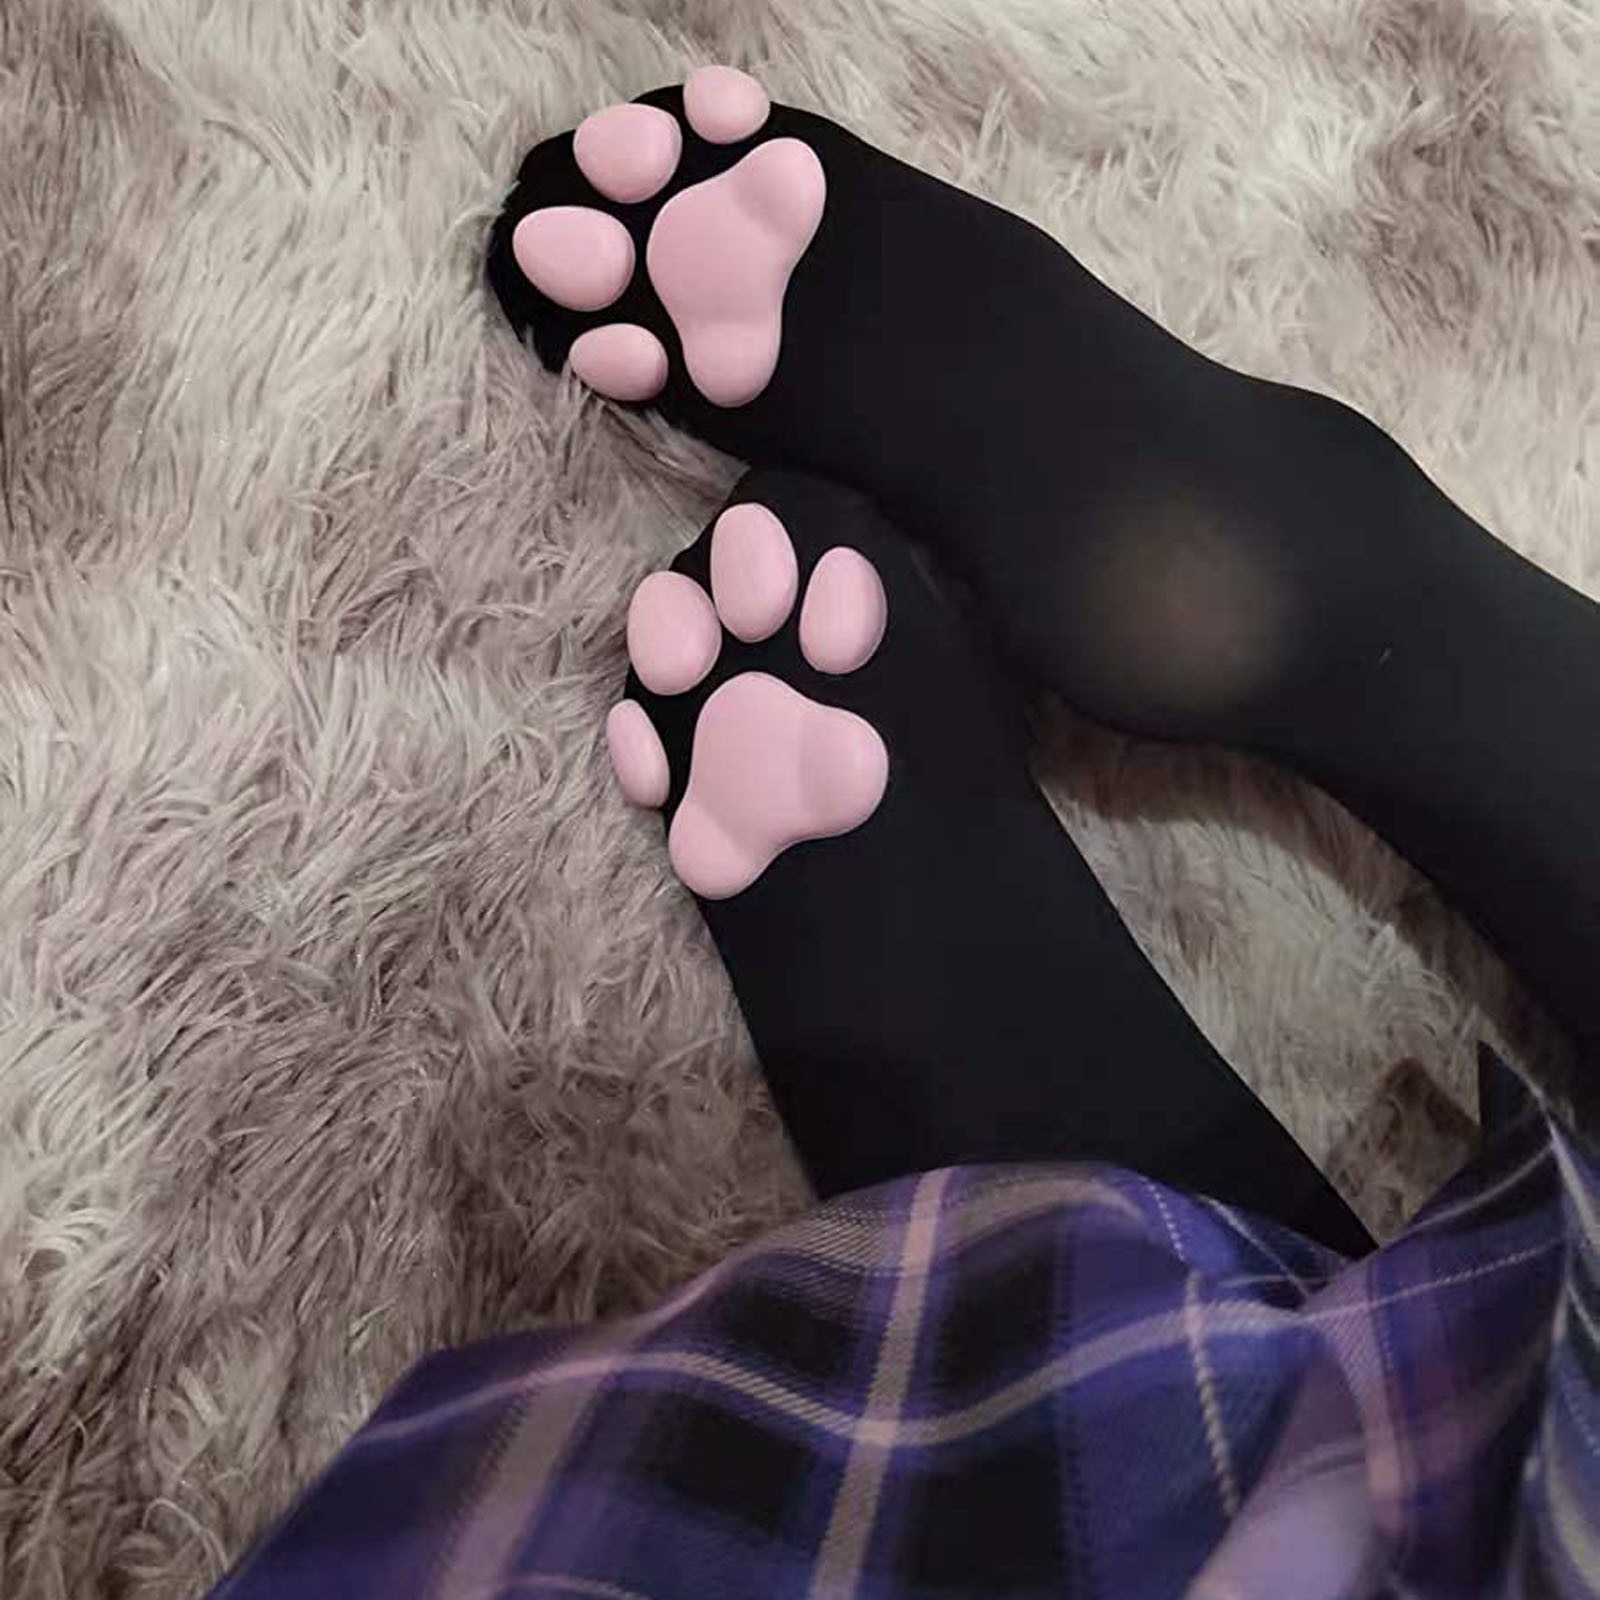 New Cat Paw Socks for Women Girls Kawaii 3D Cat Claw Toe Beanies Cute Gift Lolita PawPads Cosplay Cat Paw Pad Thigh High Socks